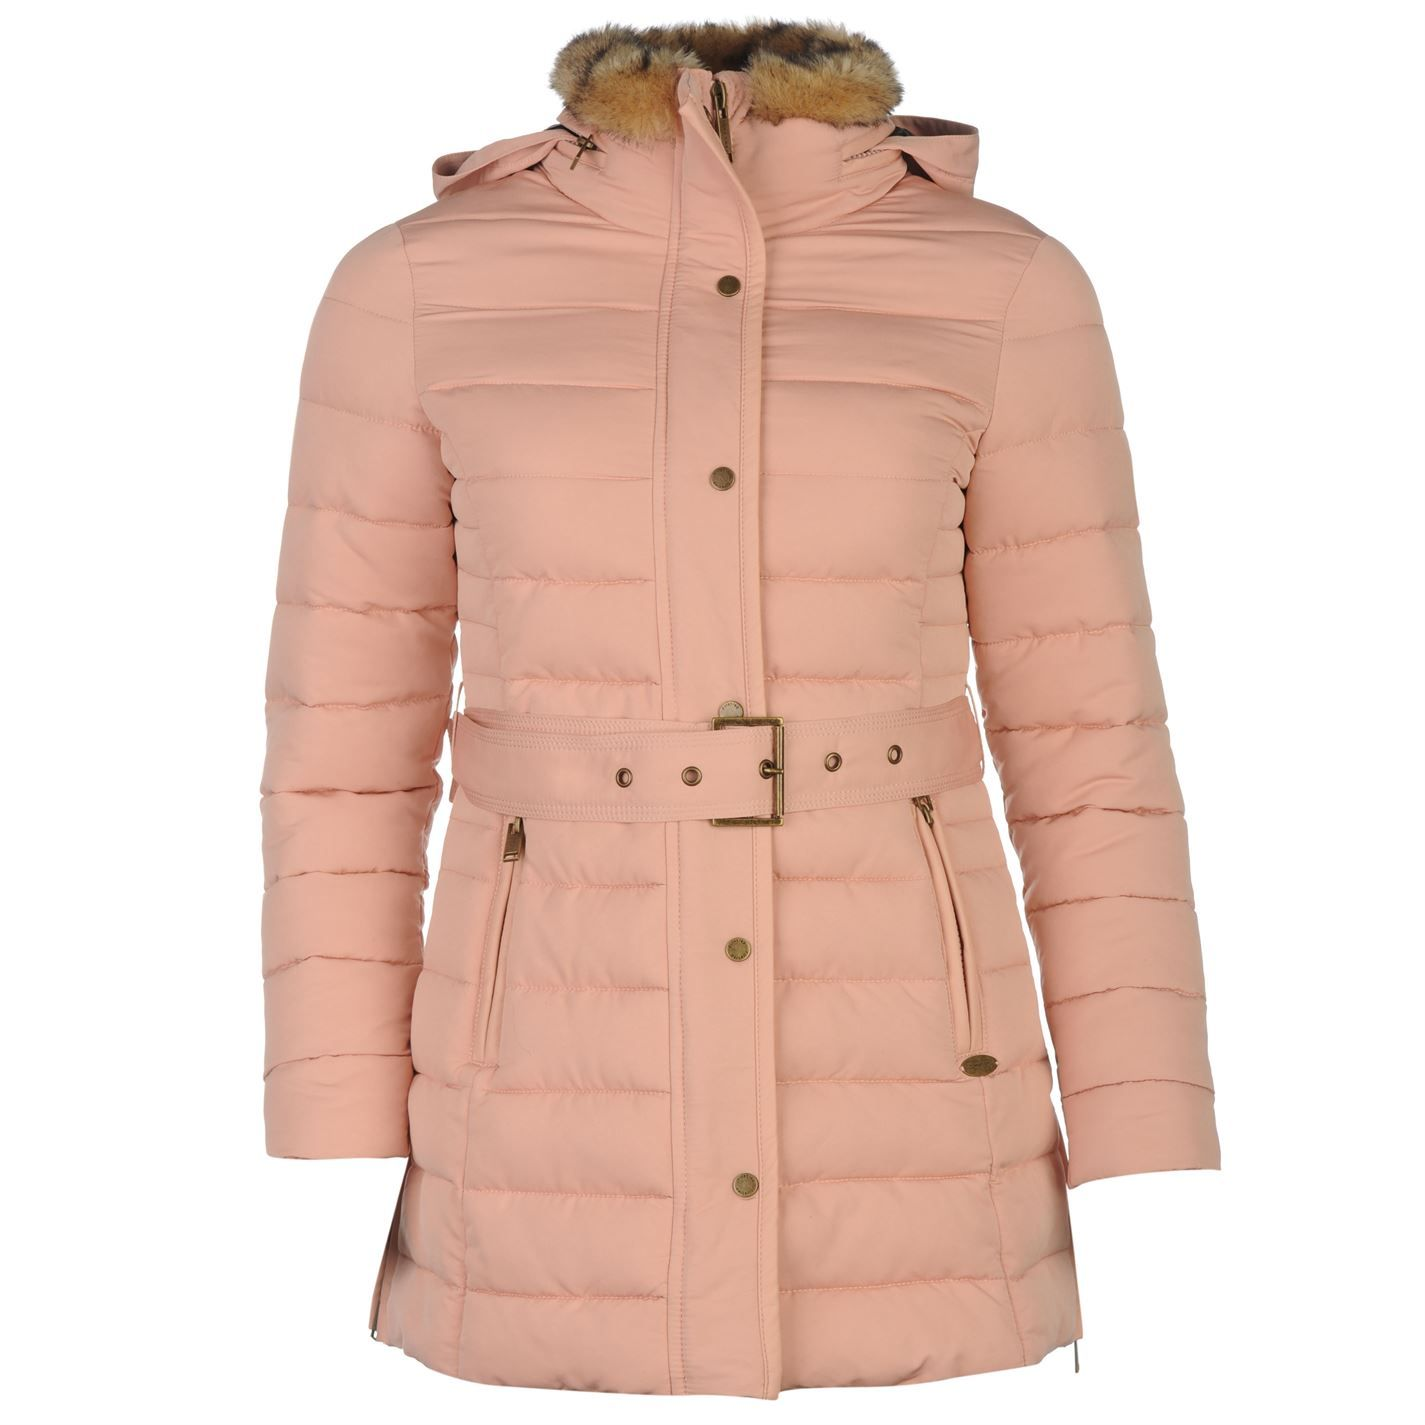 Firetrap | Firetrap Luxury Bubble Padded Jacket | Junior Girl's ...